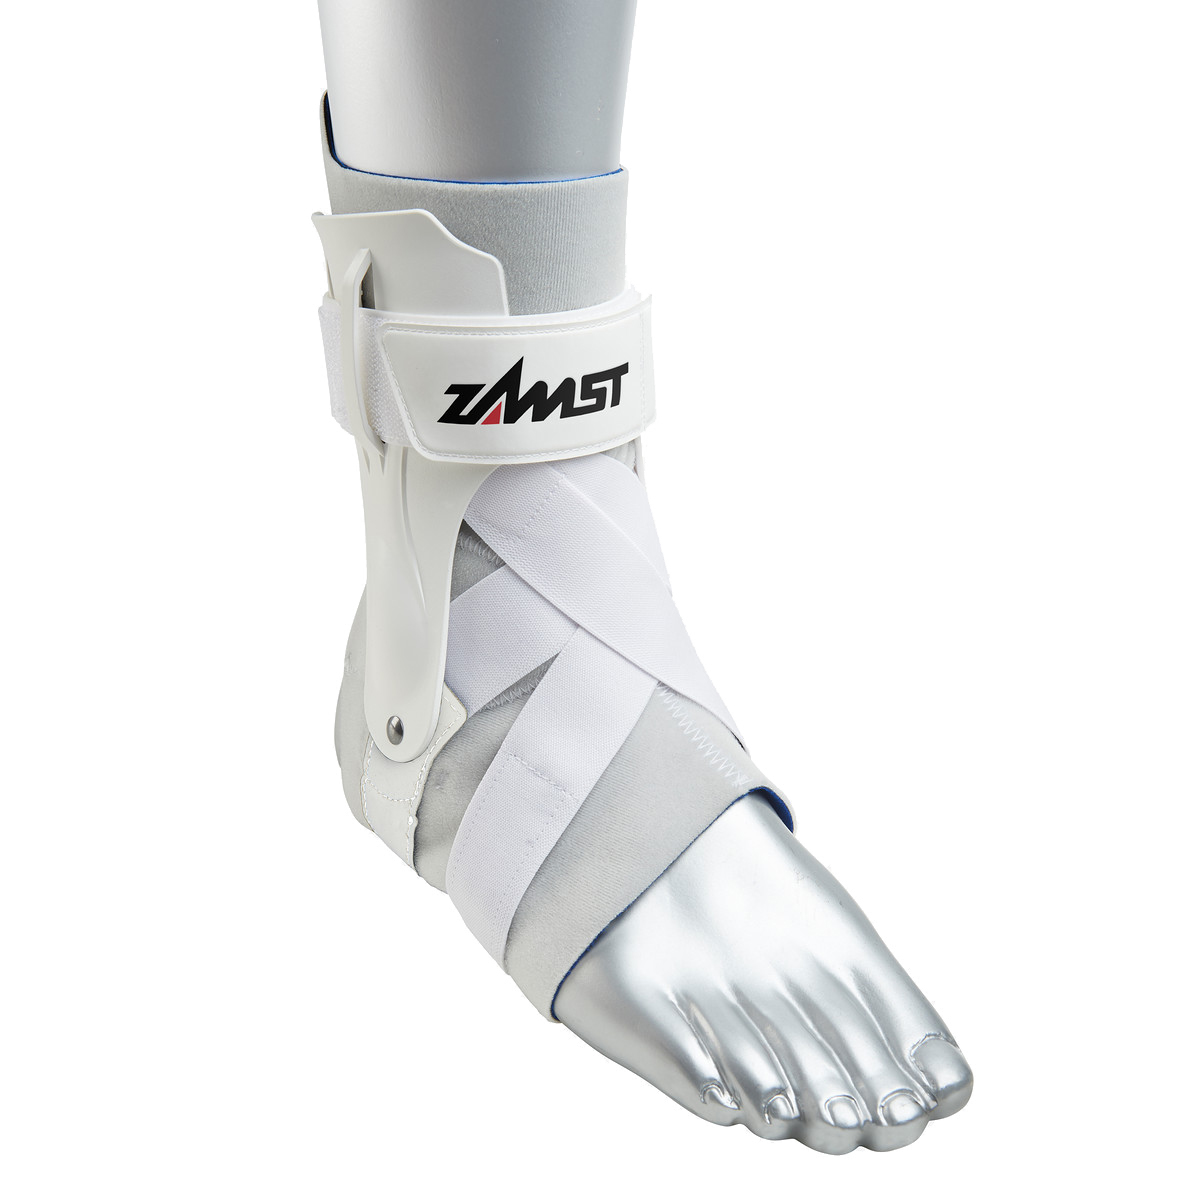 Zamst A2-DX Enkelbrace - Wit - Links - S